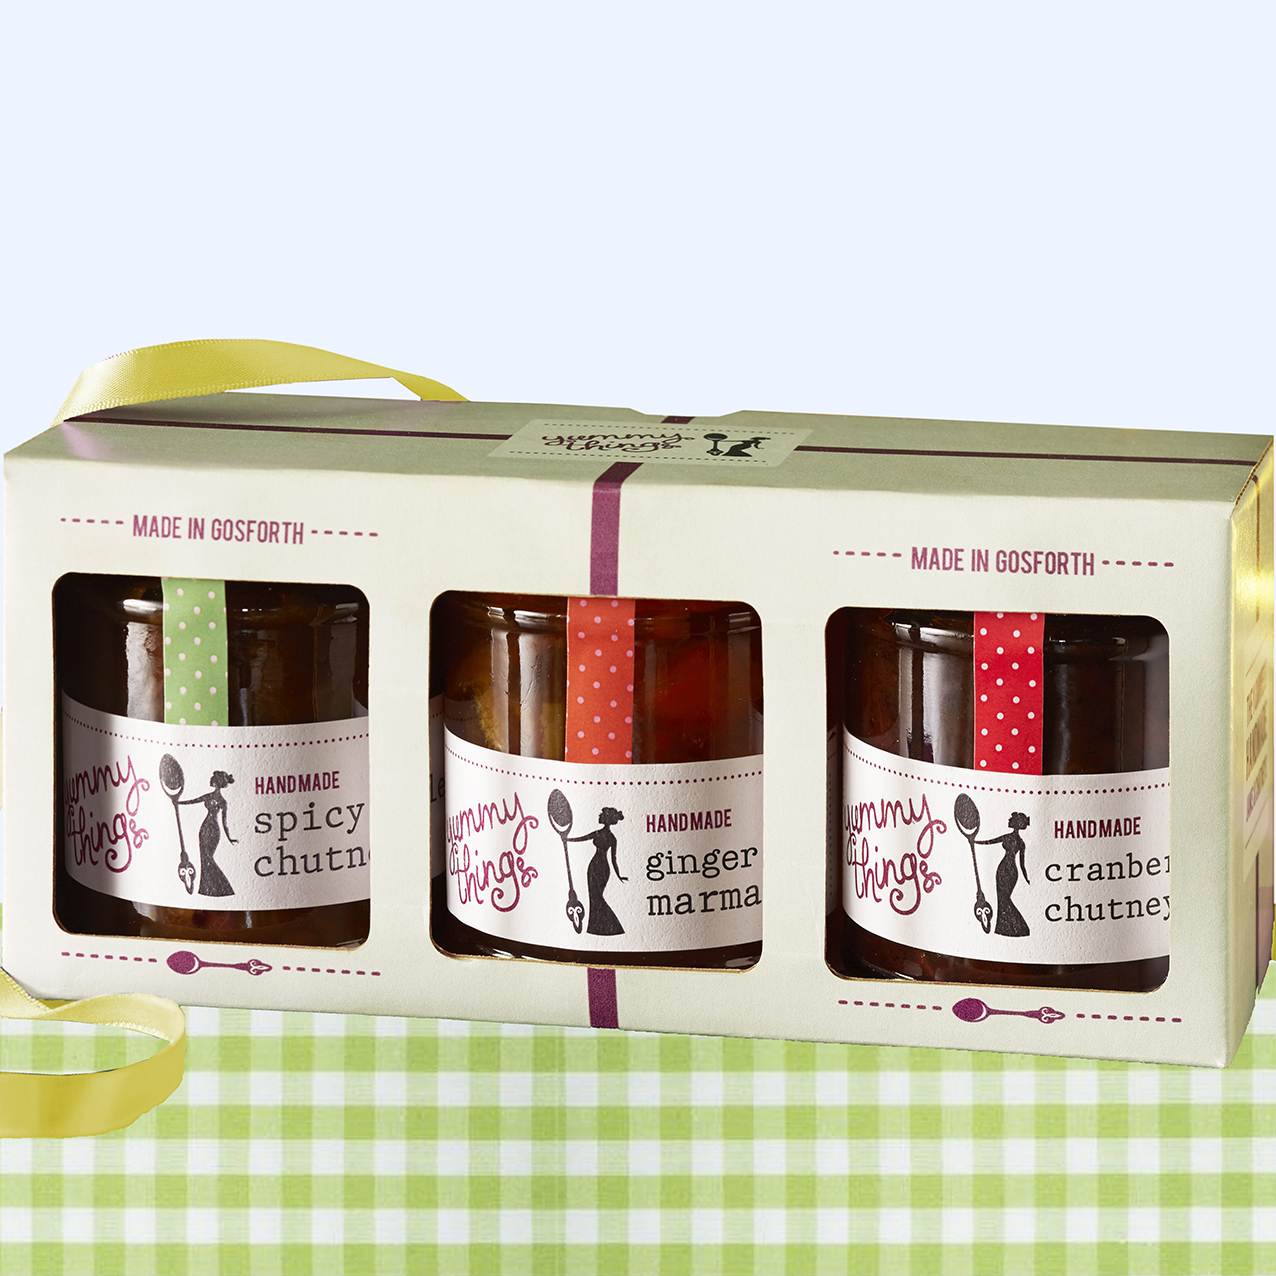 Yummy Things' delicious, handmade ginger orange marmalade, cranberry chutney and spicy onion chutney gift set- Made in Gosforth, Newcastle upon Tyne